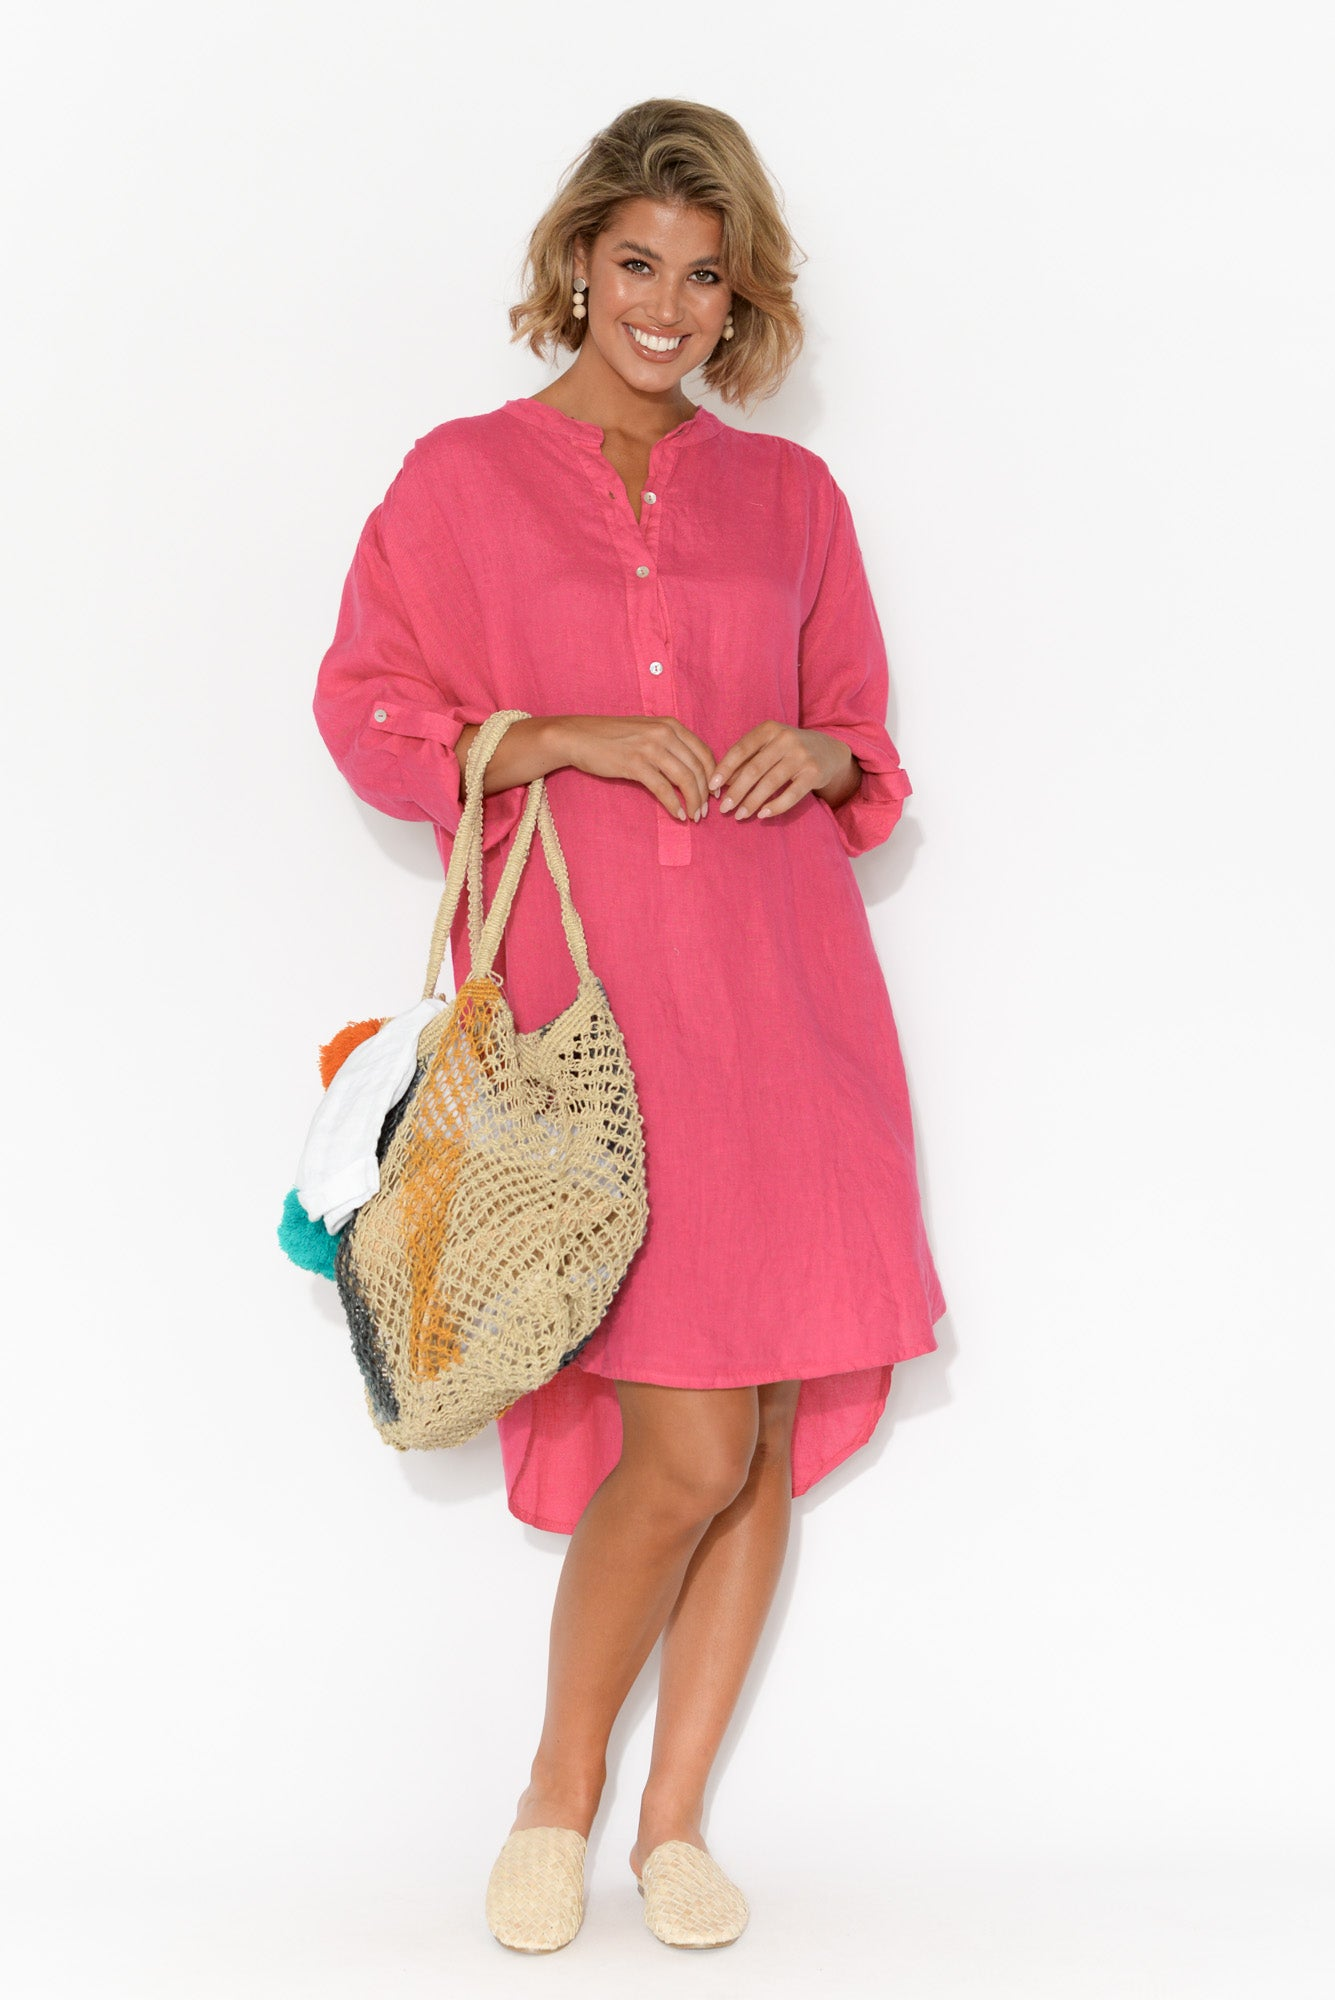 Tuscany Hot Pink Linen Tunic Top